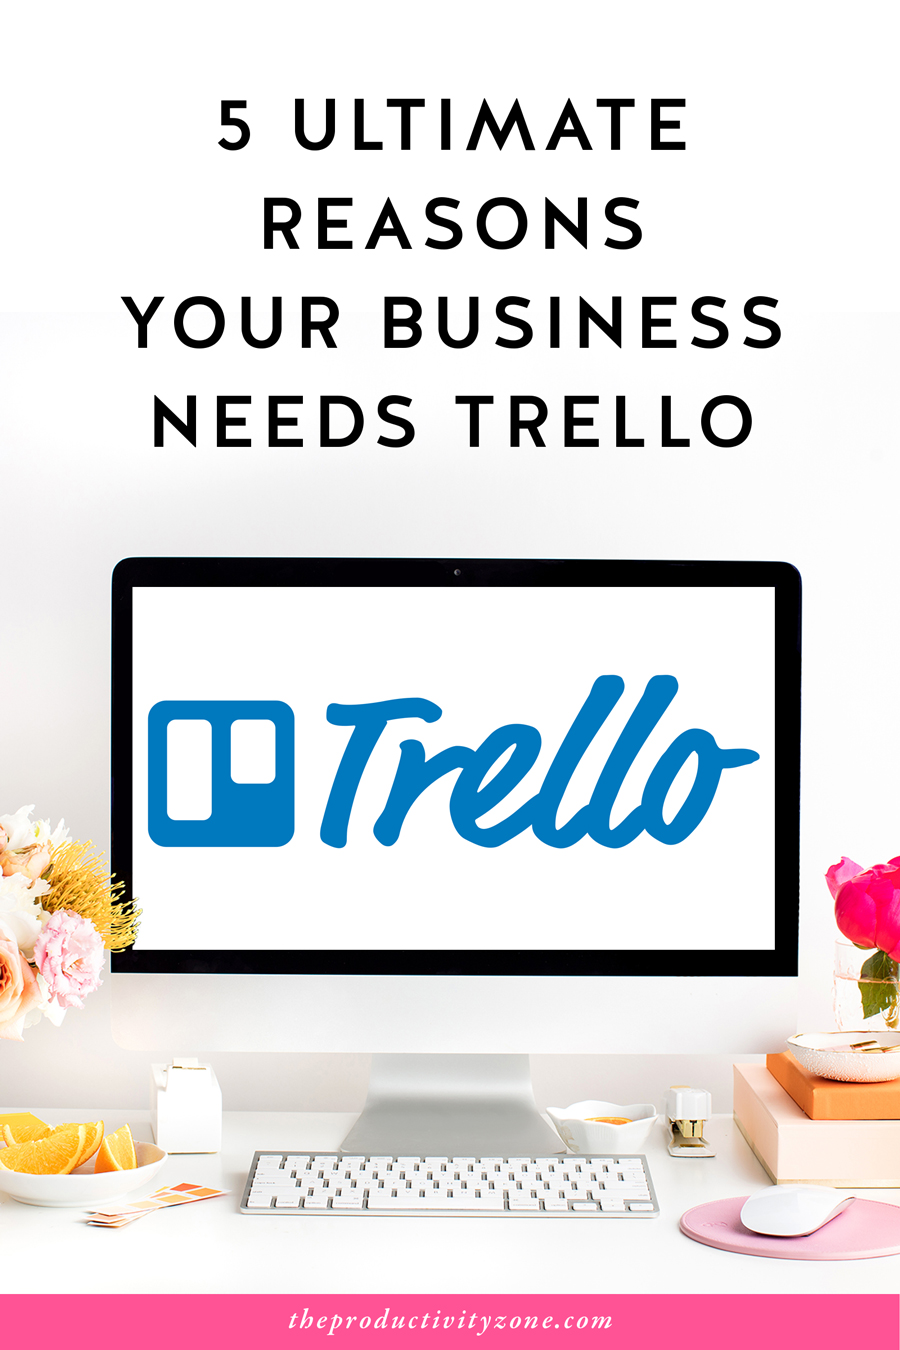 If it needs to be planned, organized, managed, or kept track of in any way, shape, or form, Trello is the project management app to use!! Over on The Productivity Zone, I'm sharing the 5 ultimate reasons your business needs Trello and how you can get instant access to The Essential Trello Start Up Guide!!